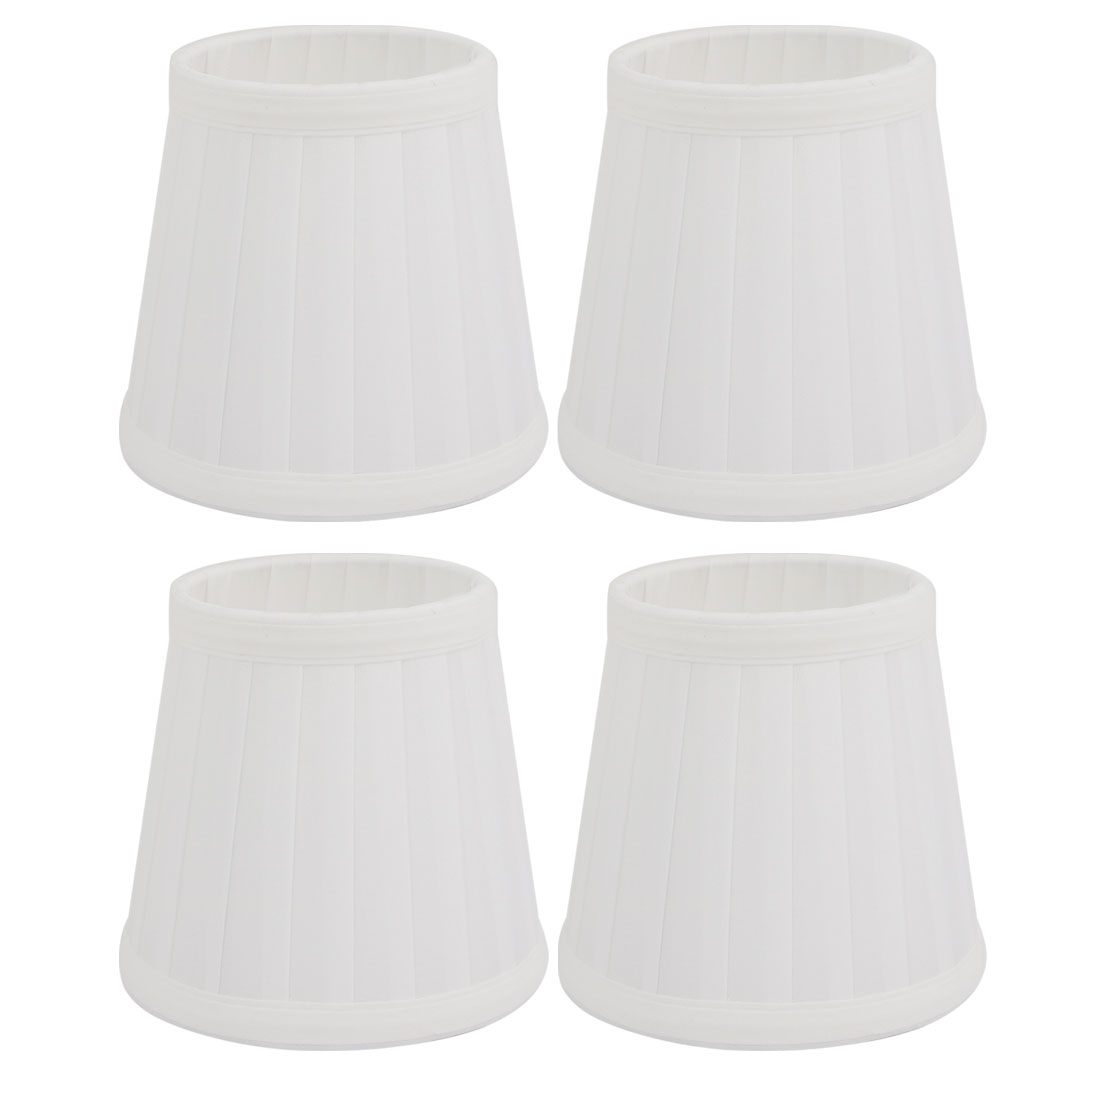 4pcs DropLight Wall Shade Chandelier Clip-On Lampshade White Fabric-Covered by